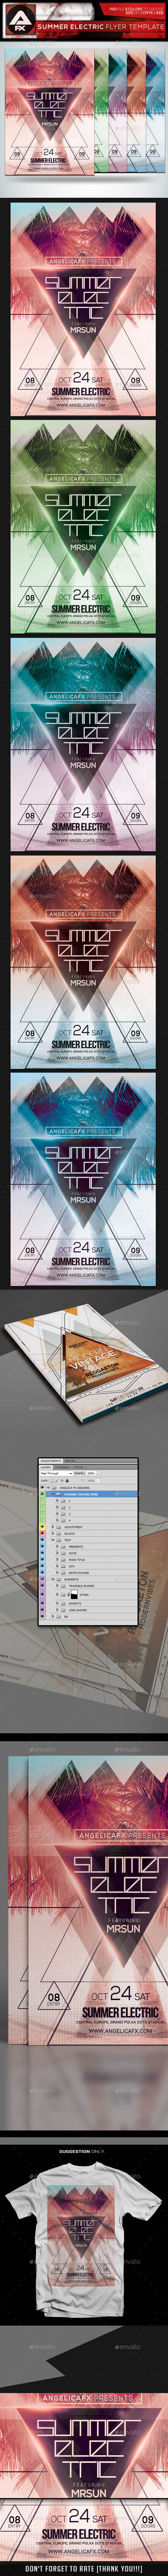 Summer Electric Flyer Template - Flyers Print Templates